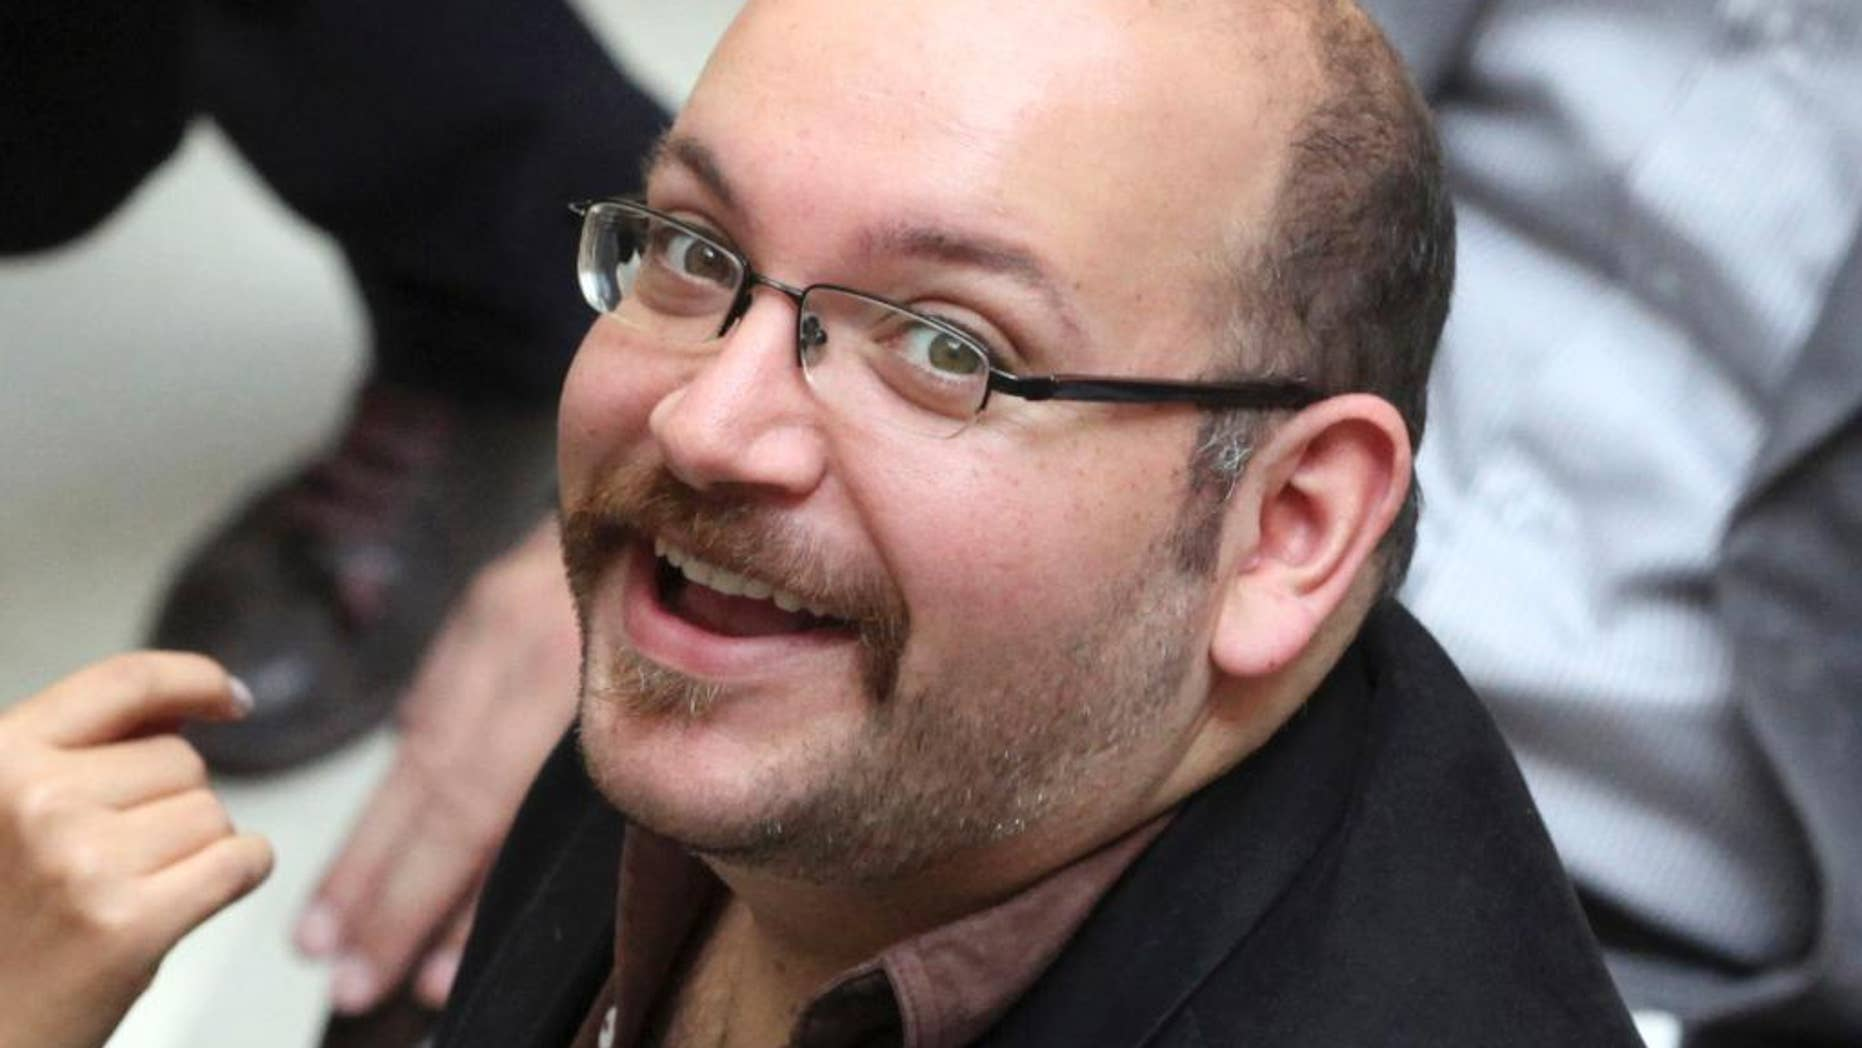 """FILE - In this photo April 11, 2013 file photo, Jason Rezaian, an Iranian-American correspondent for the Washington Post, smiles as he attends a presidential campaign of President Hassan Rouhani in Tehran, Iran. The Washington Post's executive editor says Tuesday, April 14, 2015 that Rezaian has had an """"unacceptable lack of access to legal counsel"""" while jailed for nearly nine months in Iran and still has not had a substantive discussion with his lawyer.(AP Photo/Vahid Salemi, File)"""